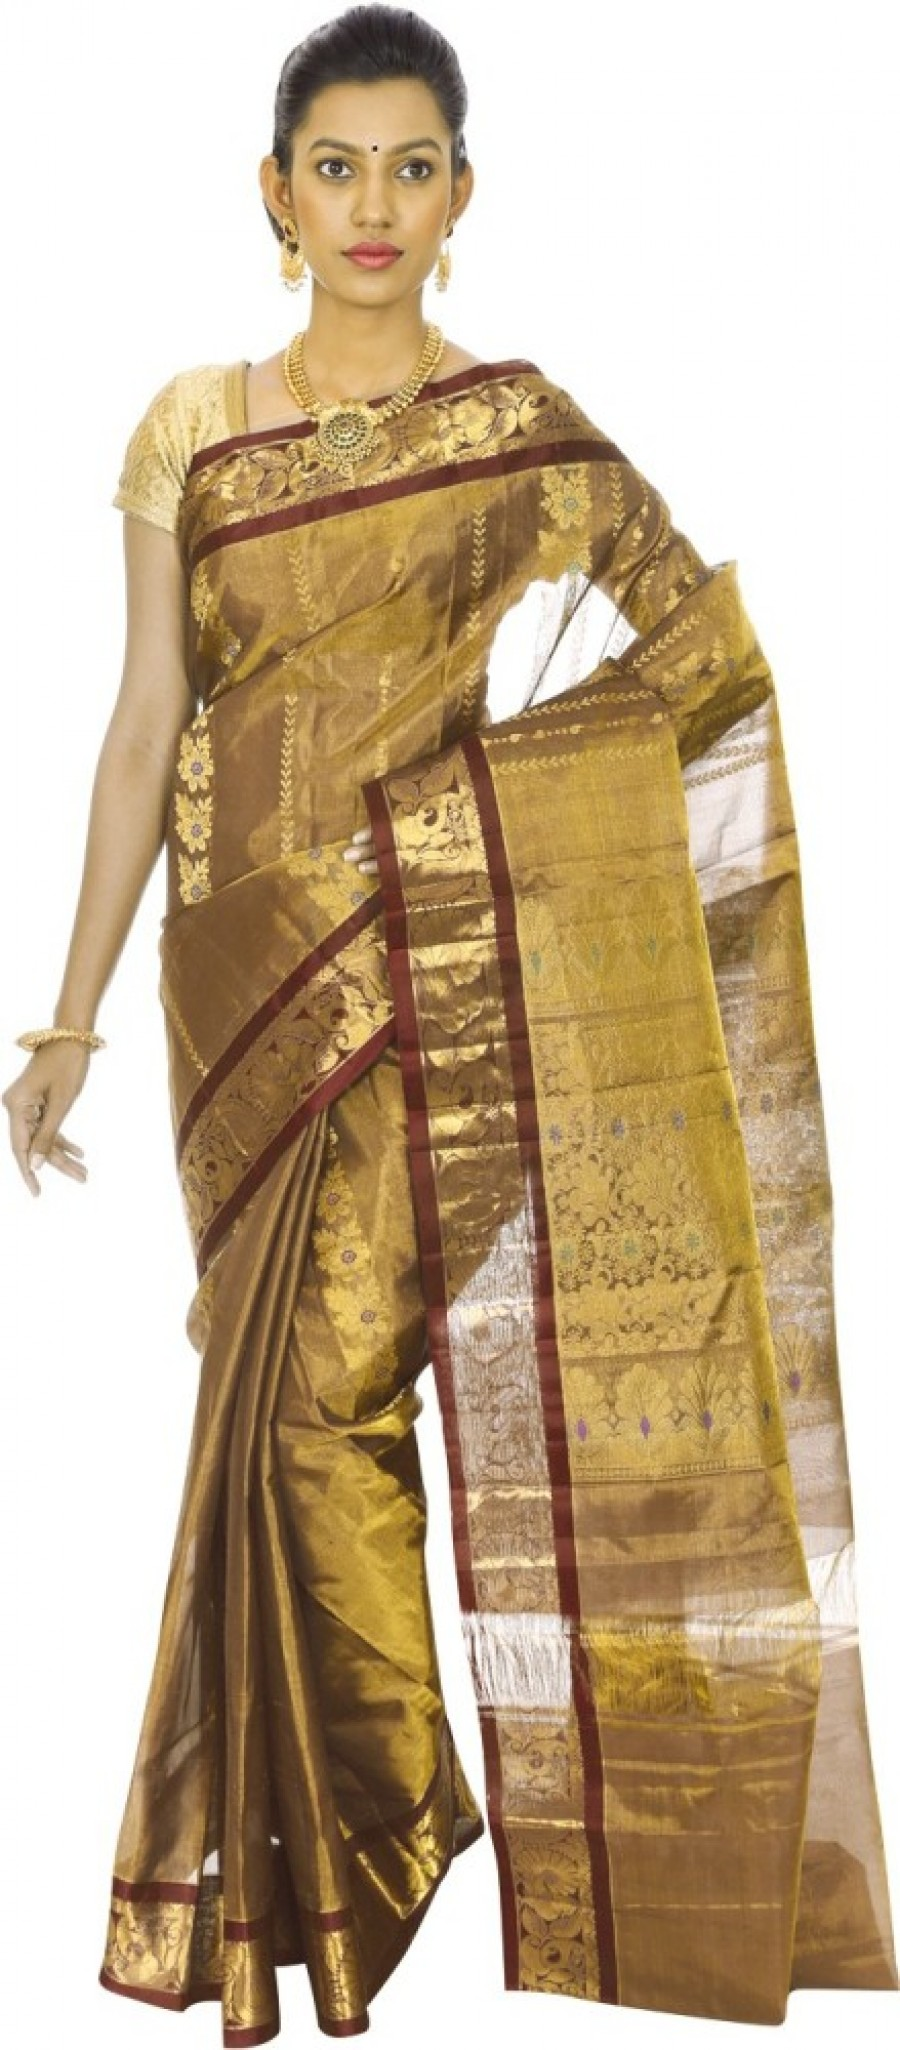 Buy Mahaveersilkcreations Woven Kanjivaram Handloom Pure Silk Sari Online